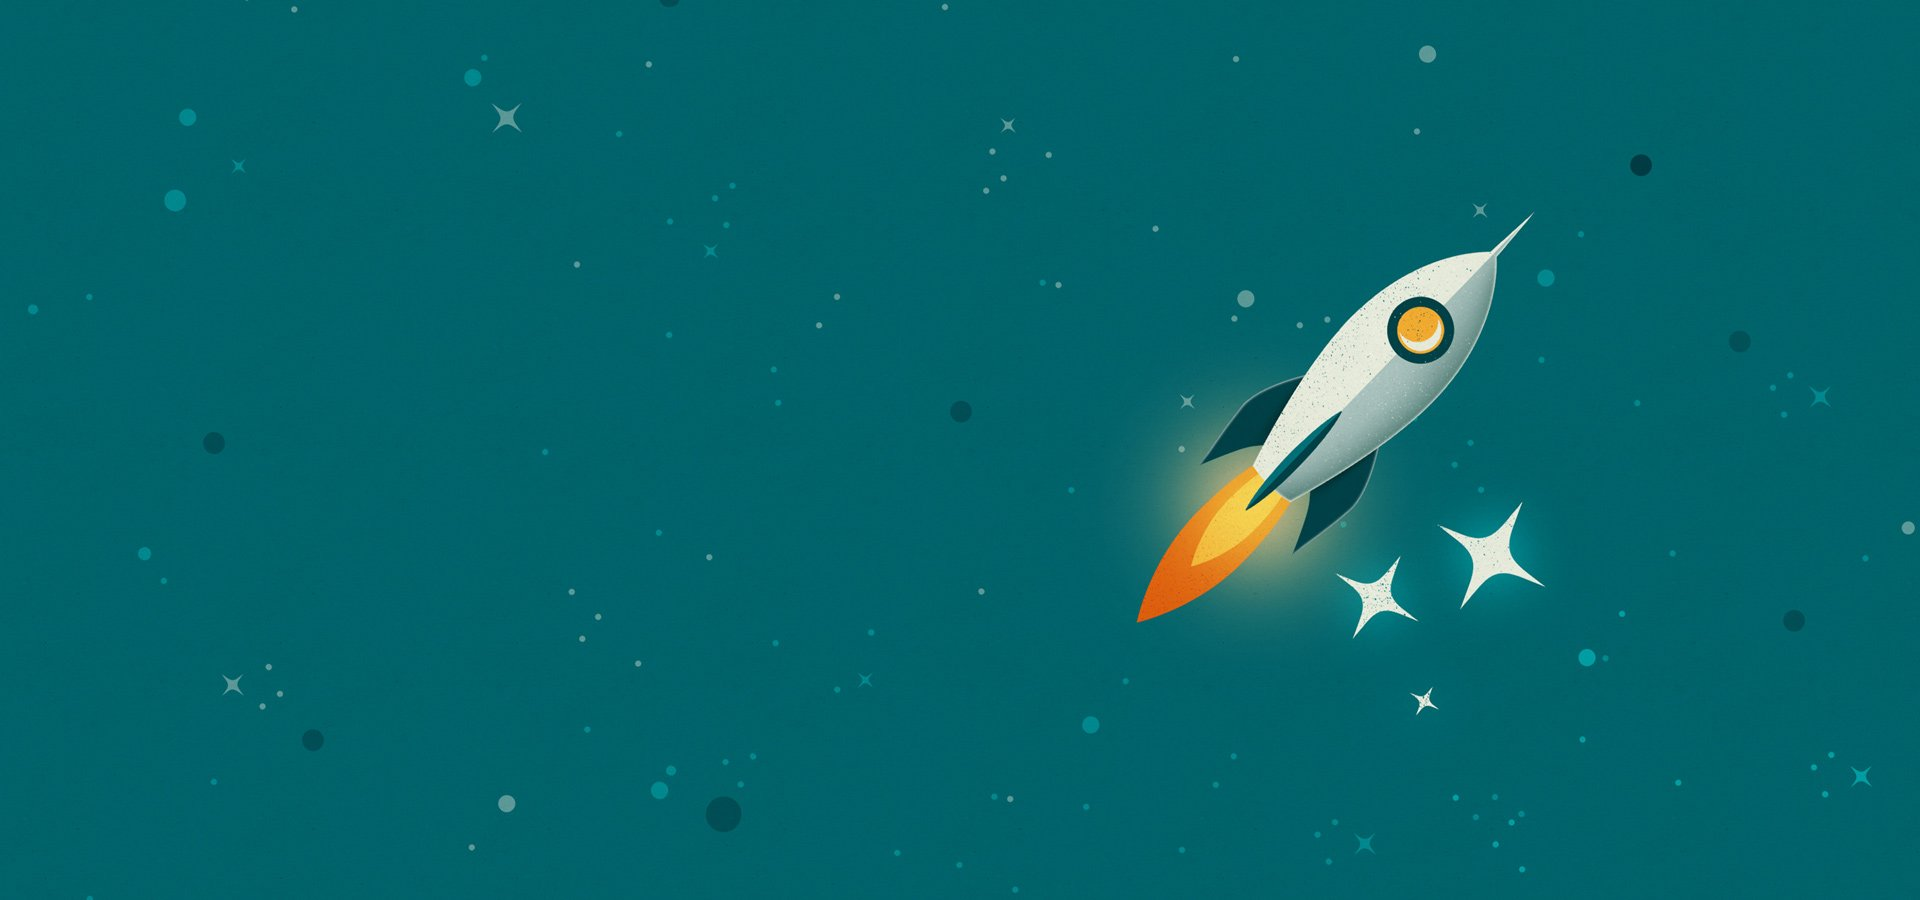 Rouse Limited Rocket in space illustration for desktop